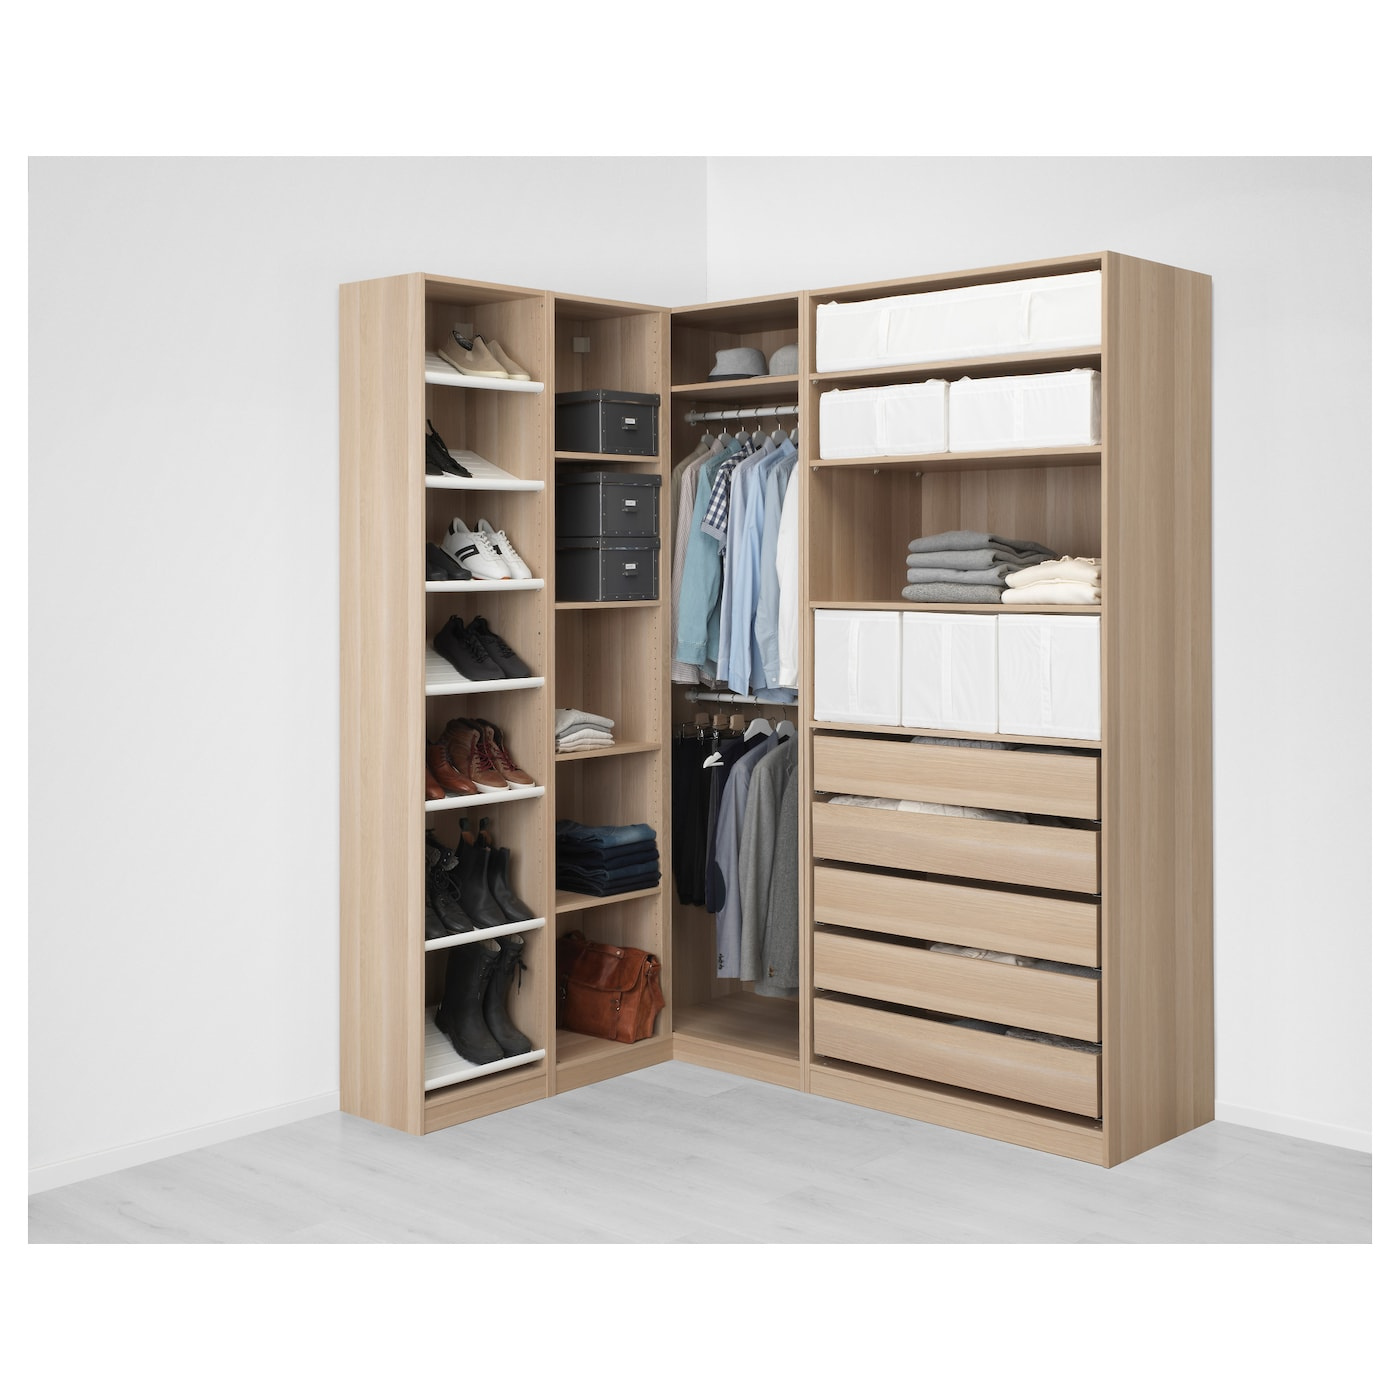 Ikea Armadio Ad Angolo.Pax Corner Wardrobe White Stained Oak Effect Ikea